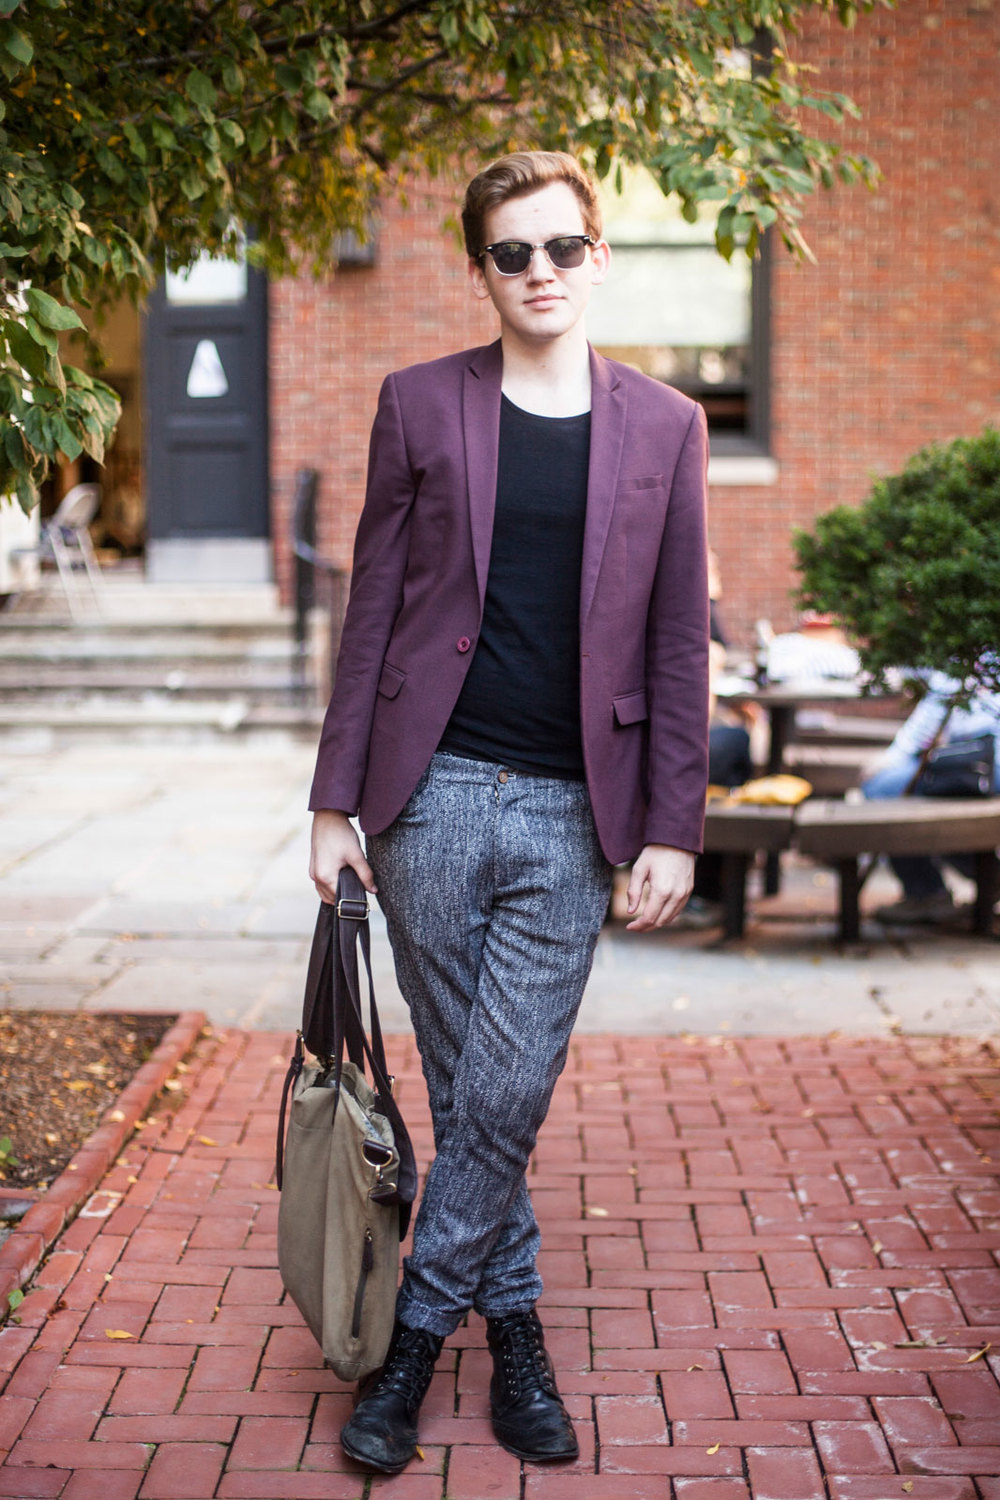 Matt White from Columbia Topman T-shirt, sunglasses, blazer, pants, and boots, all from ASOS